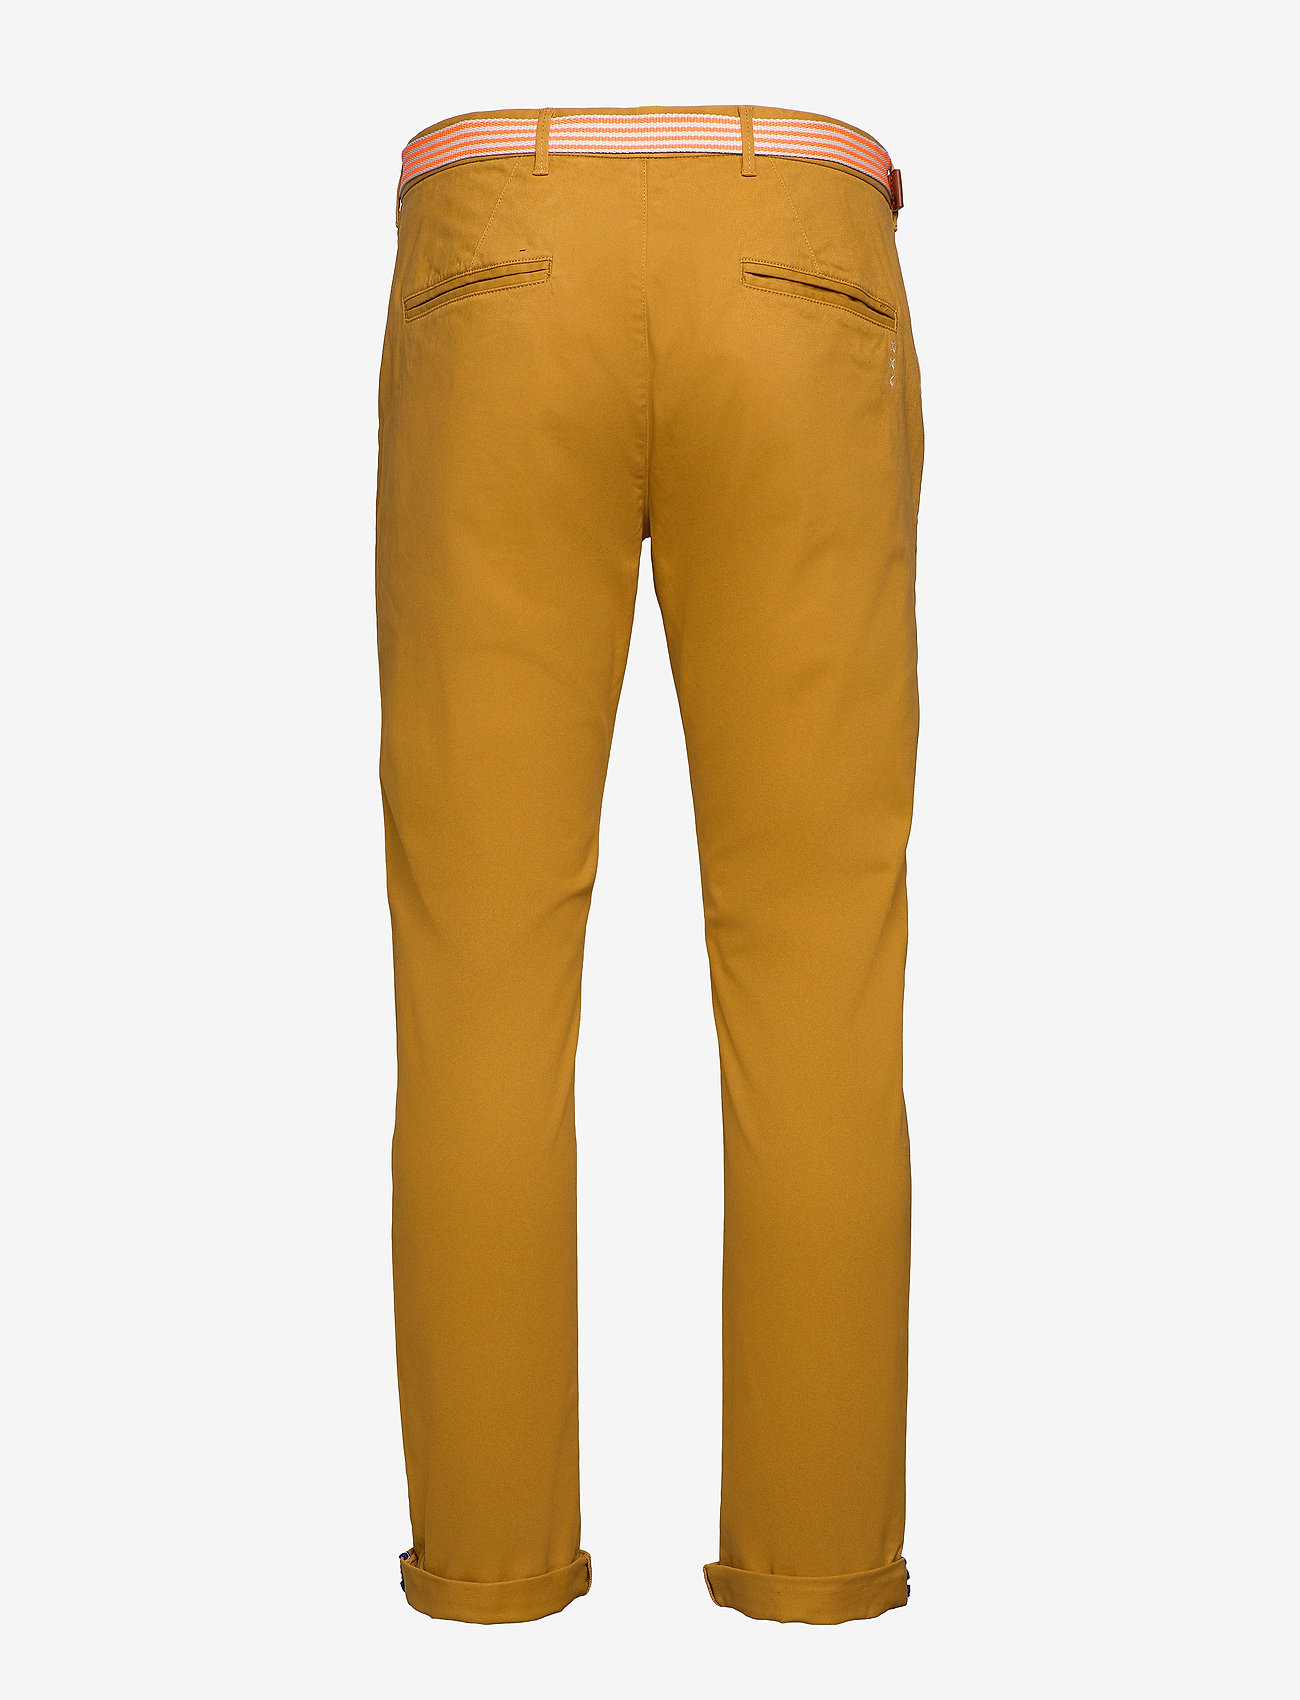 Scotch & Soda - Stuart peached twill chino with give away belt - chinos - sandlewood - 1